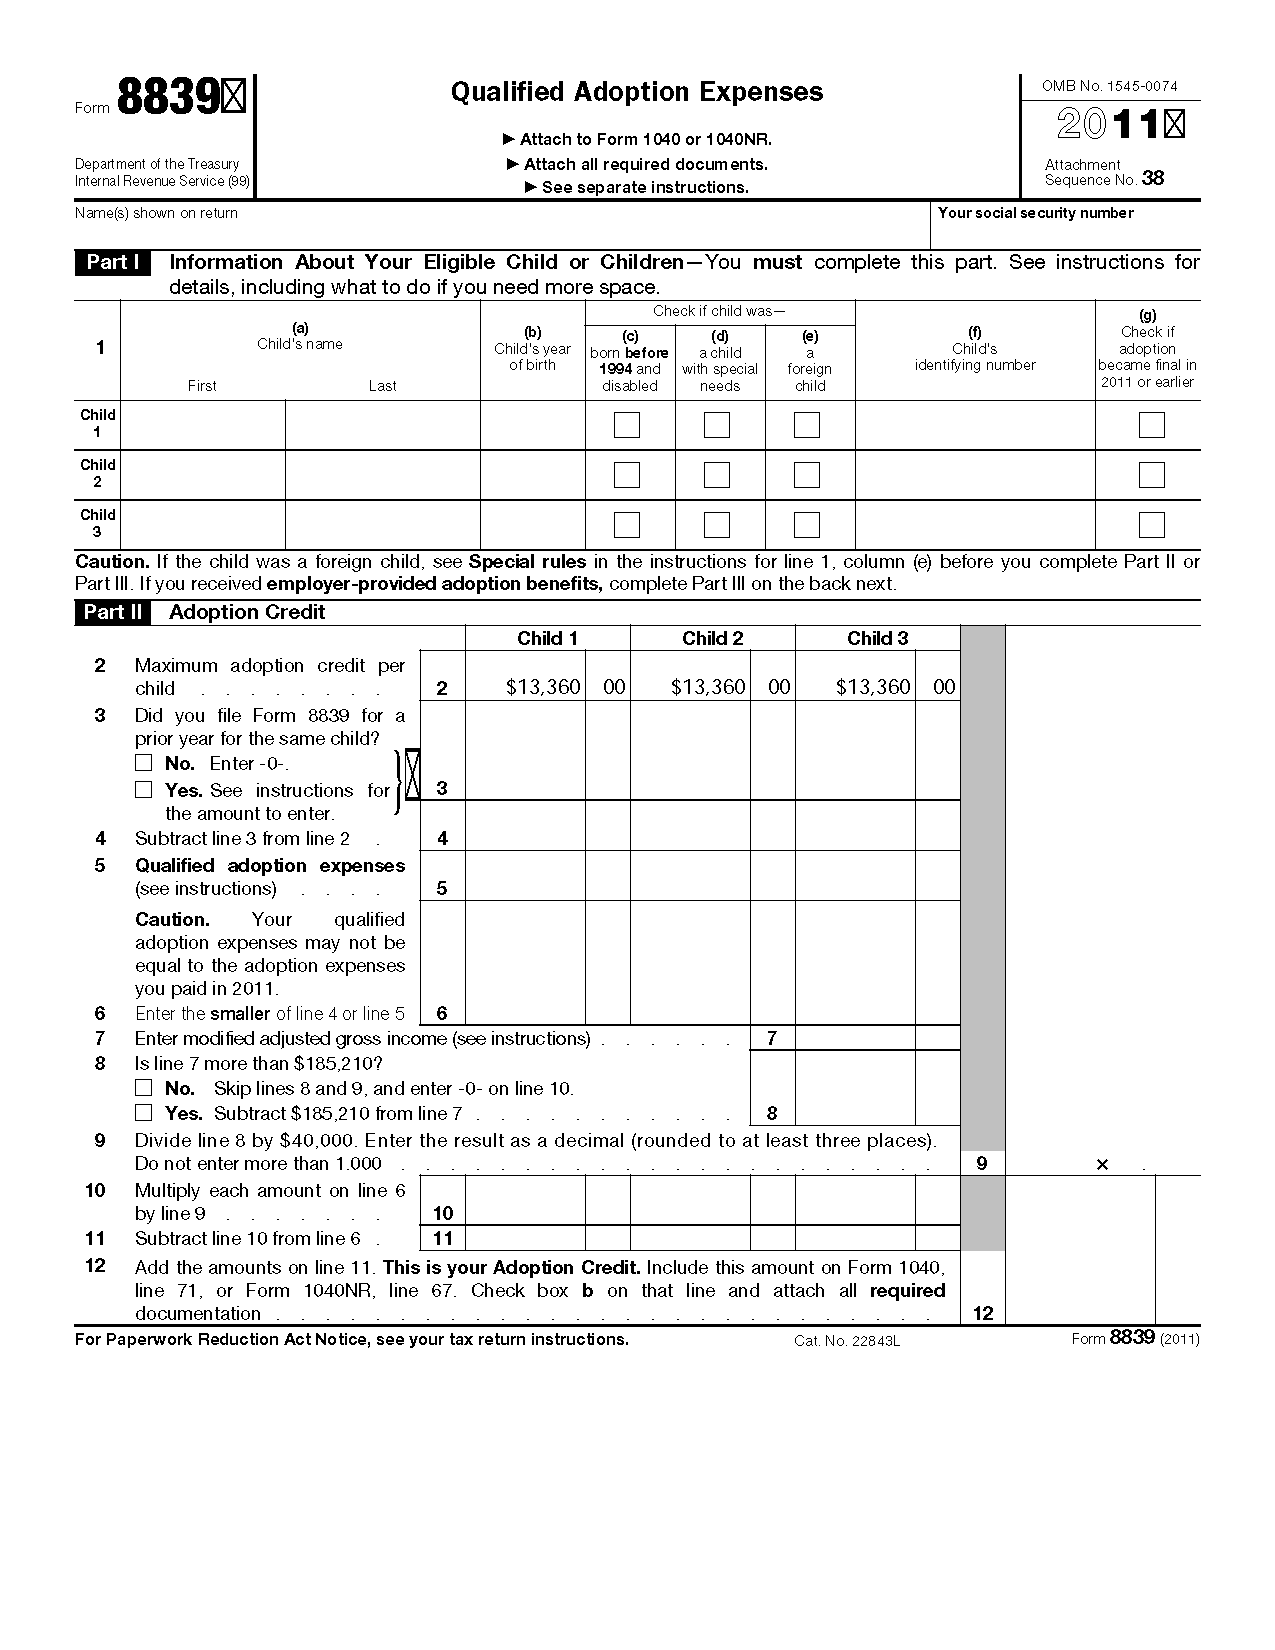 Form 8839 qualified adoption expenses view all 2011 irs tax forms falaconquin